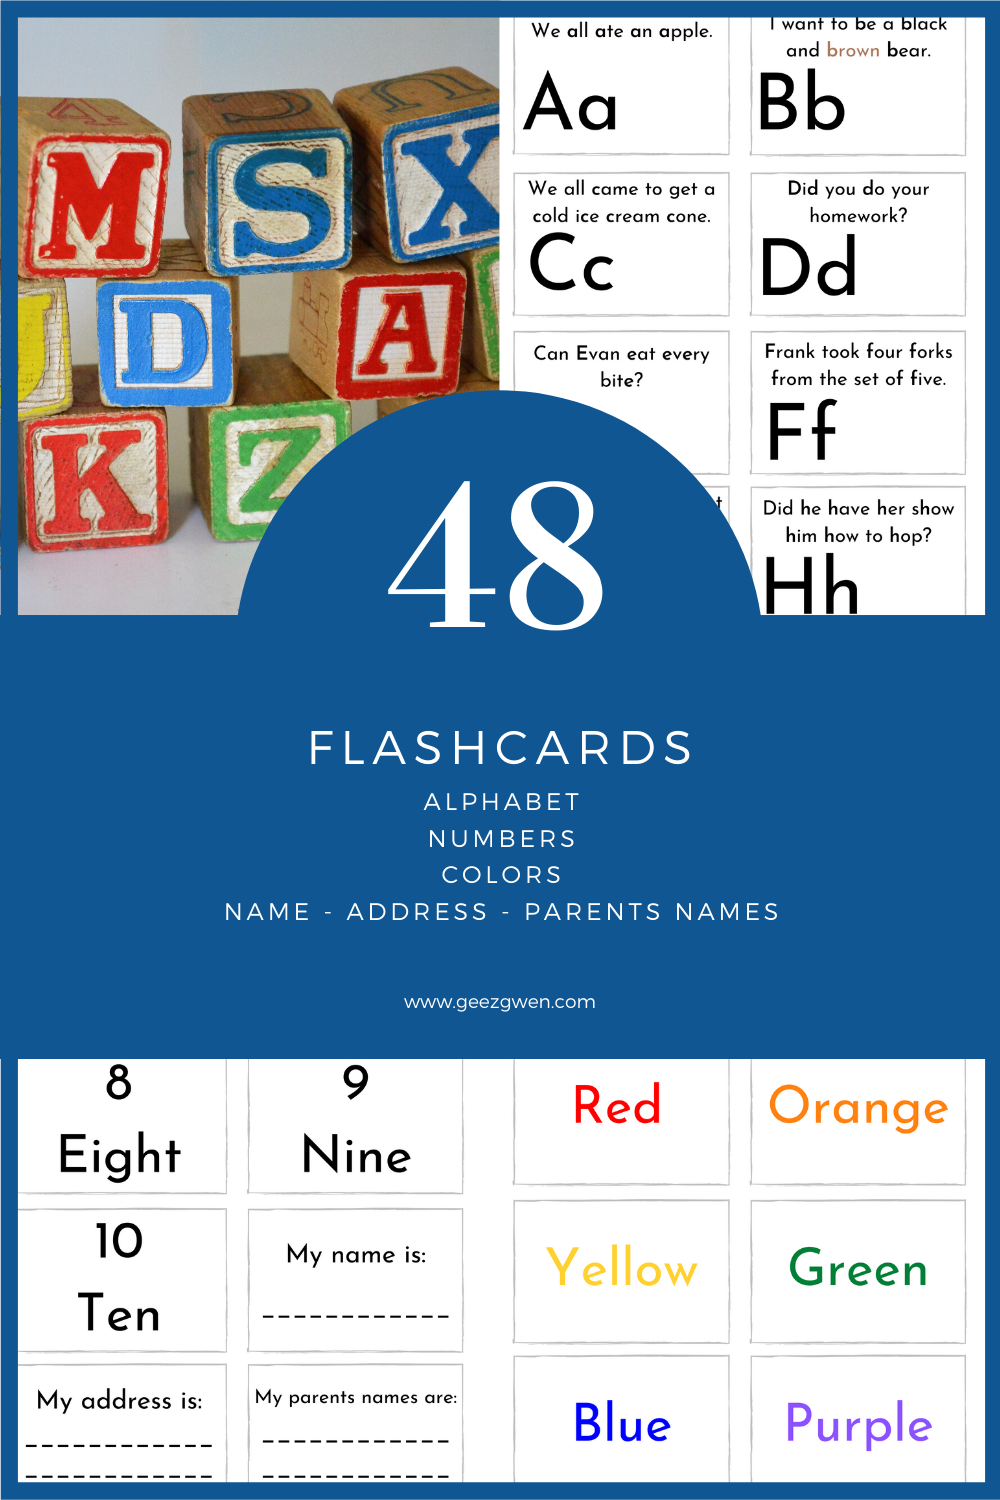 Printable Kindergarten Flashcard Set Includes Alphabet, Numbers, and Colors